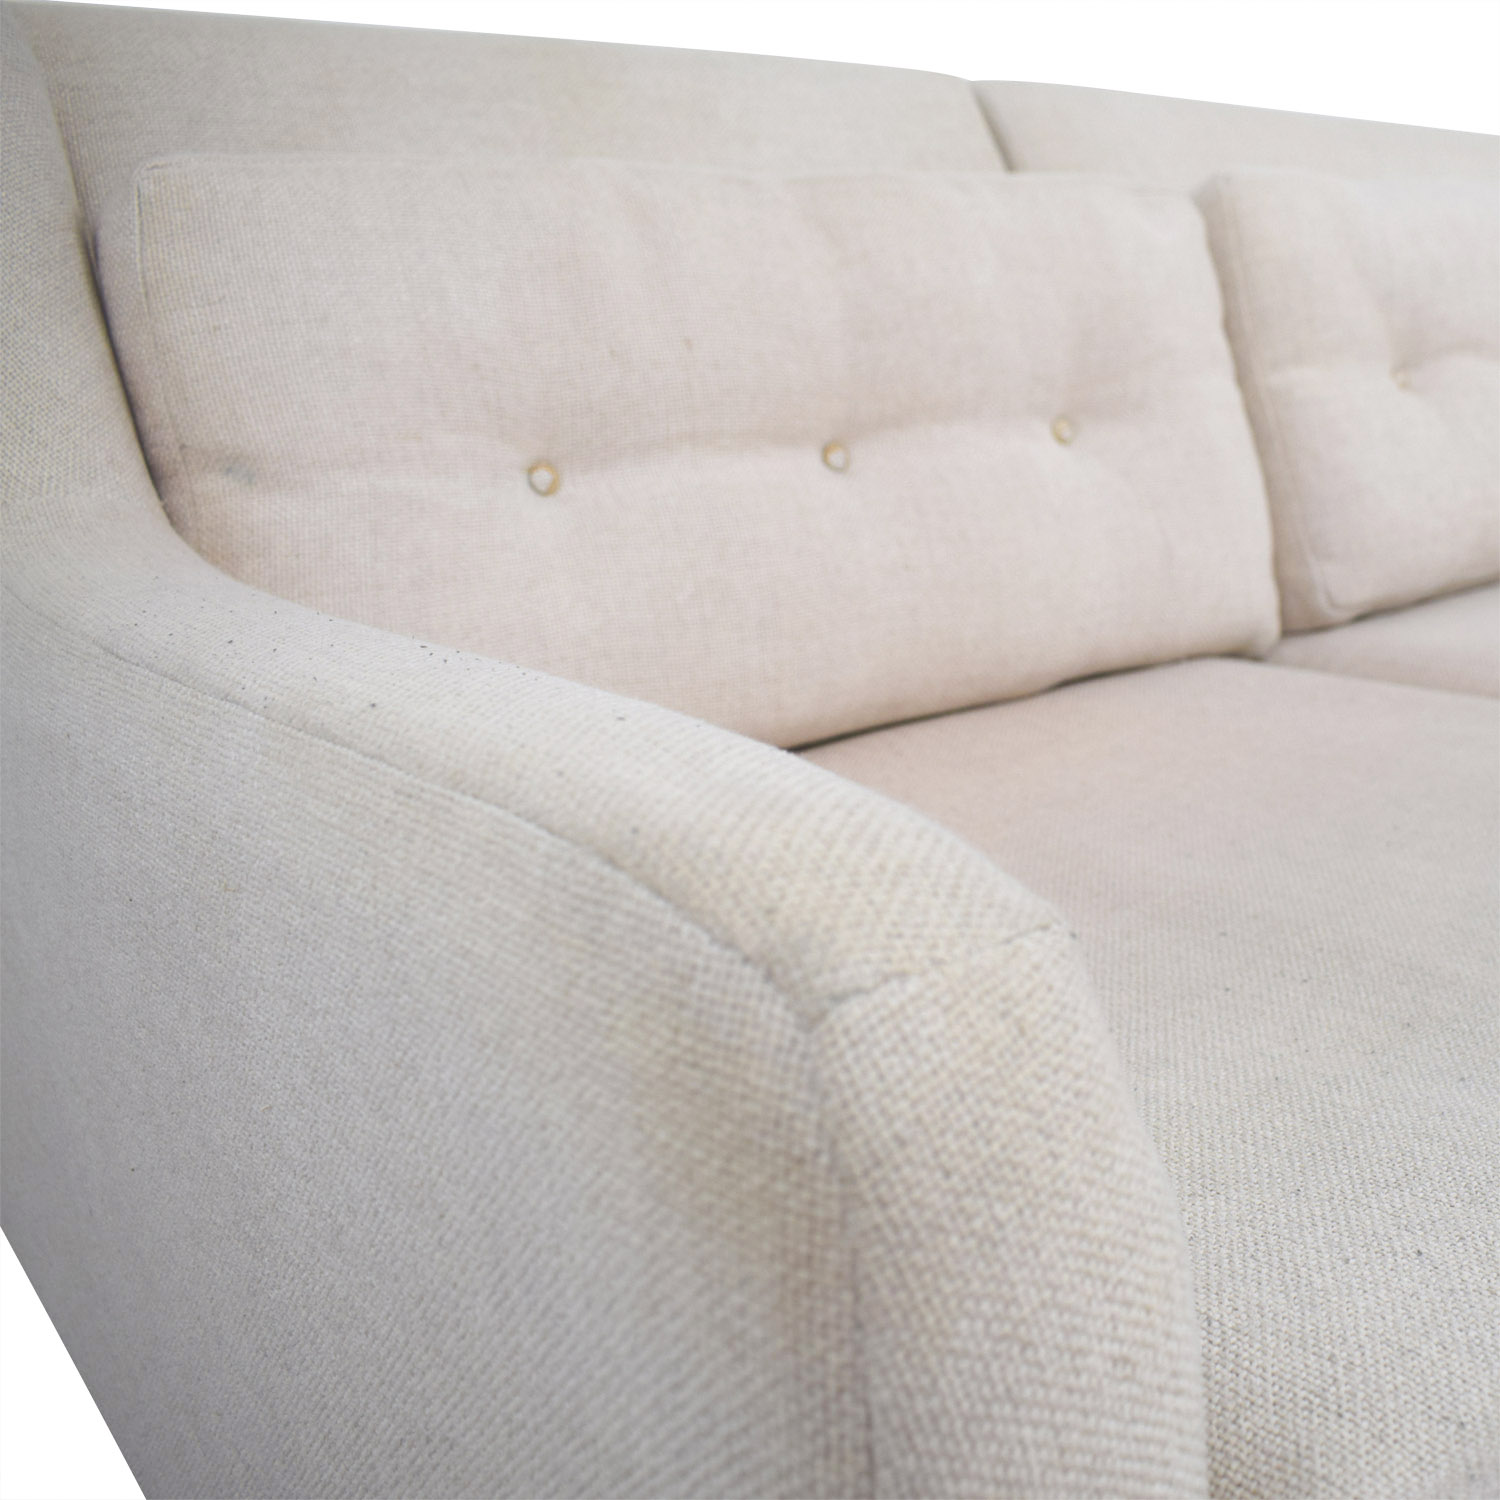 west elm crosby chair special needs chairs for babies 67 off beige mid century 2 piece chaise sectional sofa